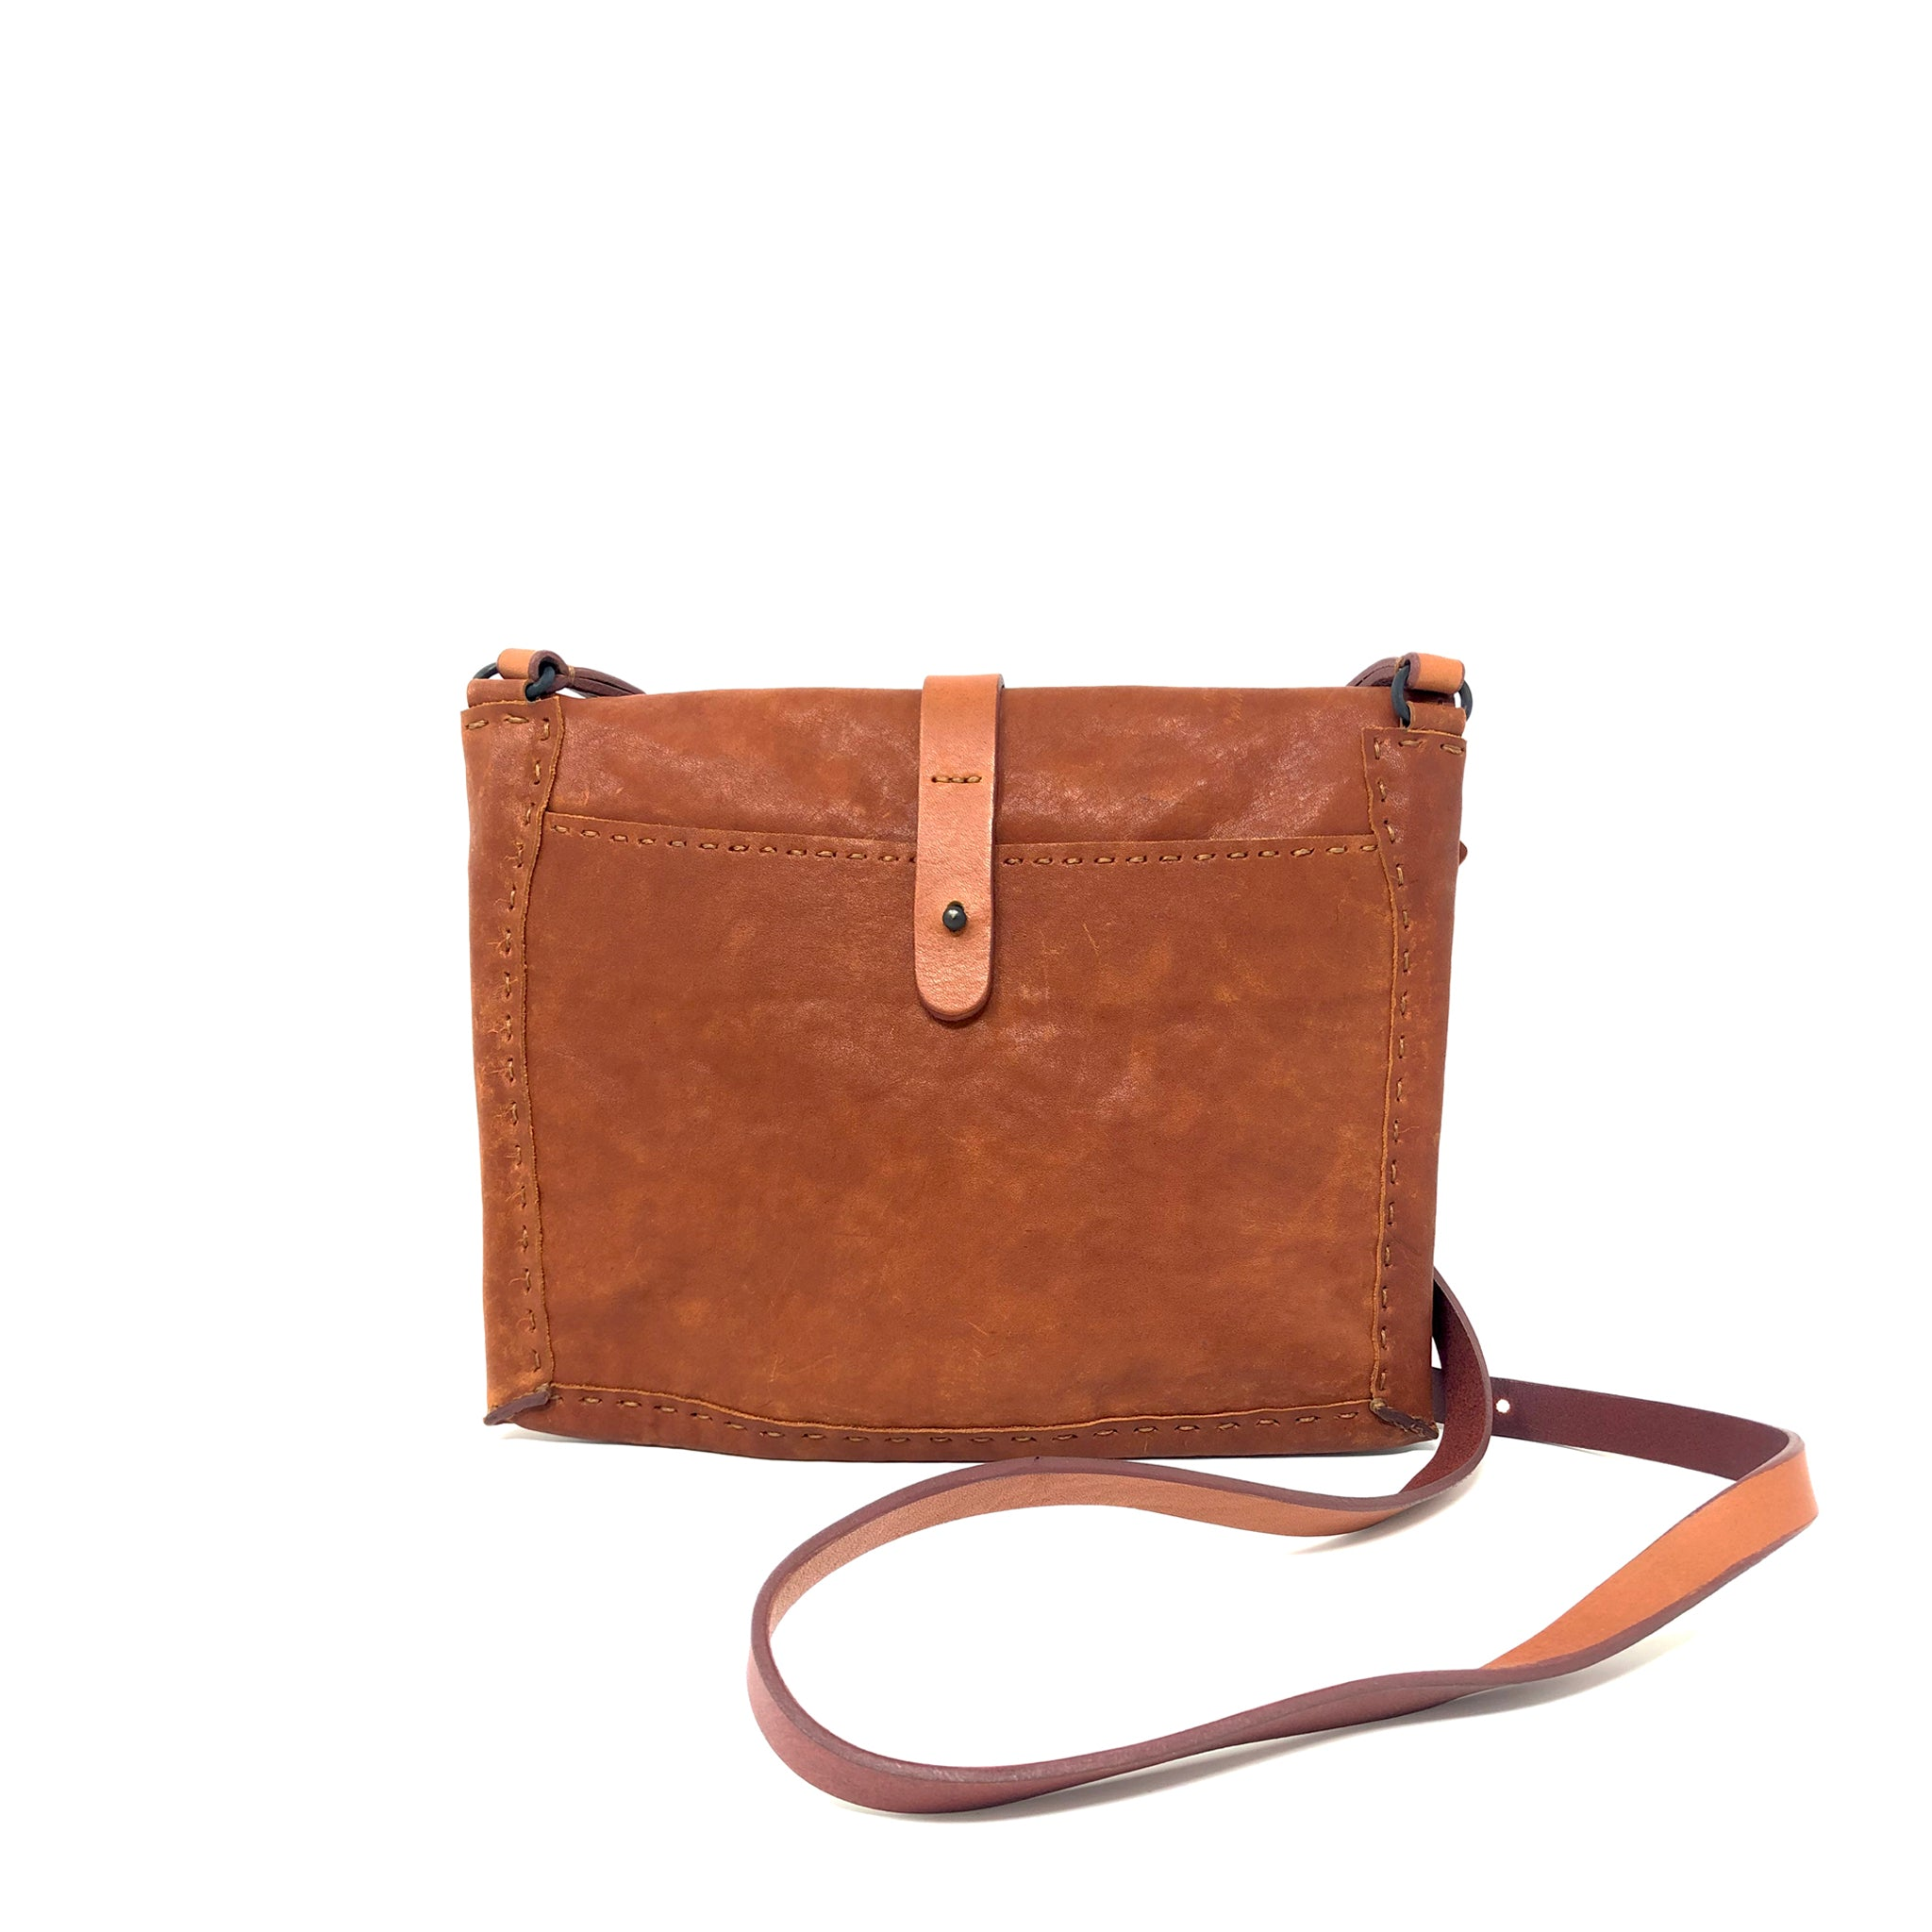 Sierra Leone - L Leather Bag